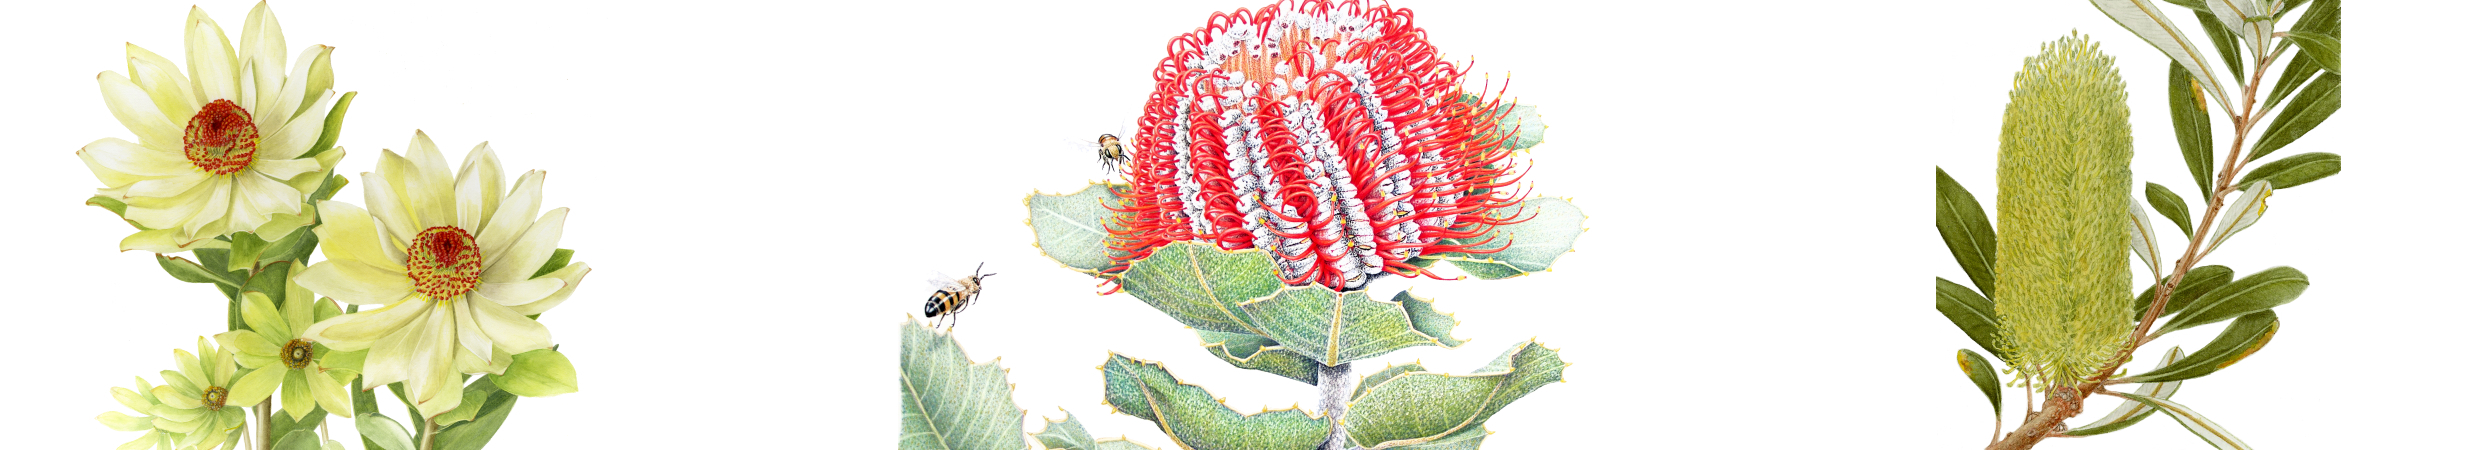 Artwork from left to right: Sue Stuart - Leucadendron, Janet Matthews - Banksia coccinea, Leonie Norton - Banksia integrifolia